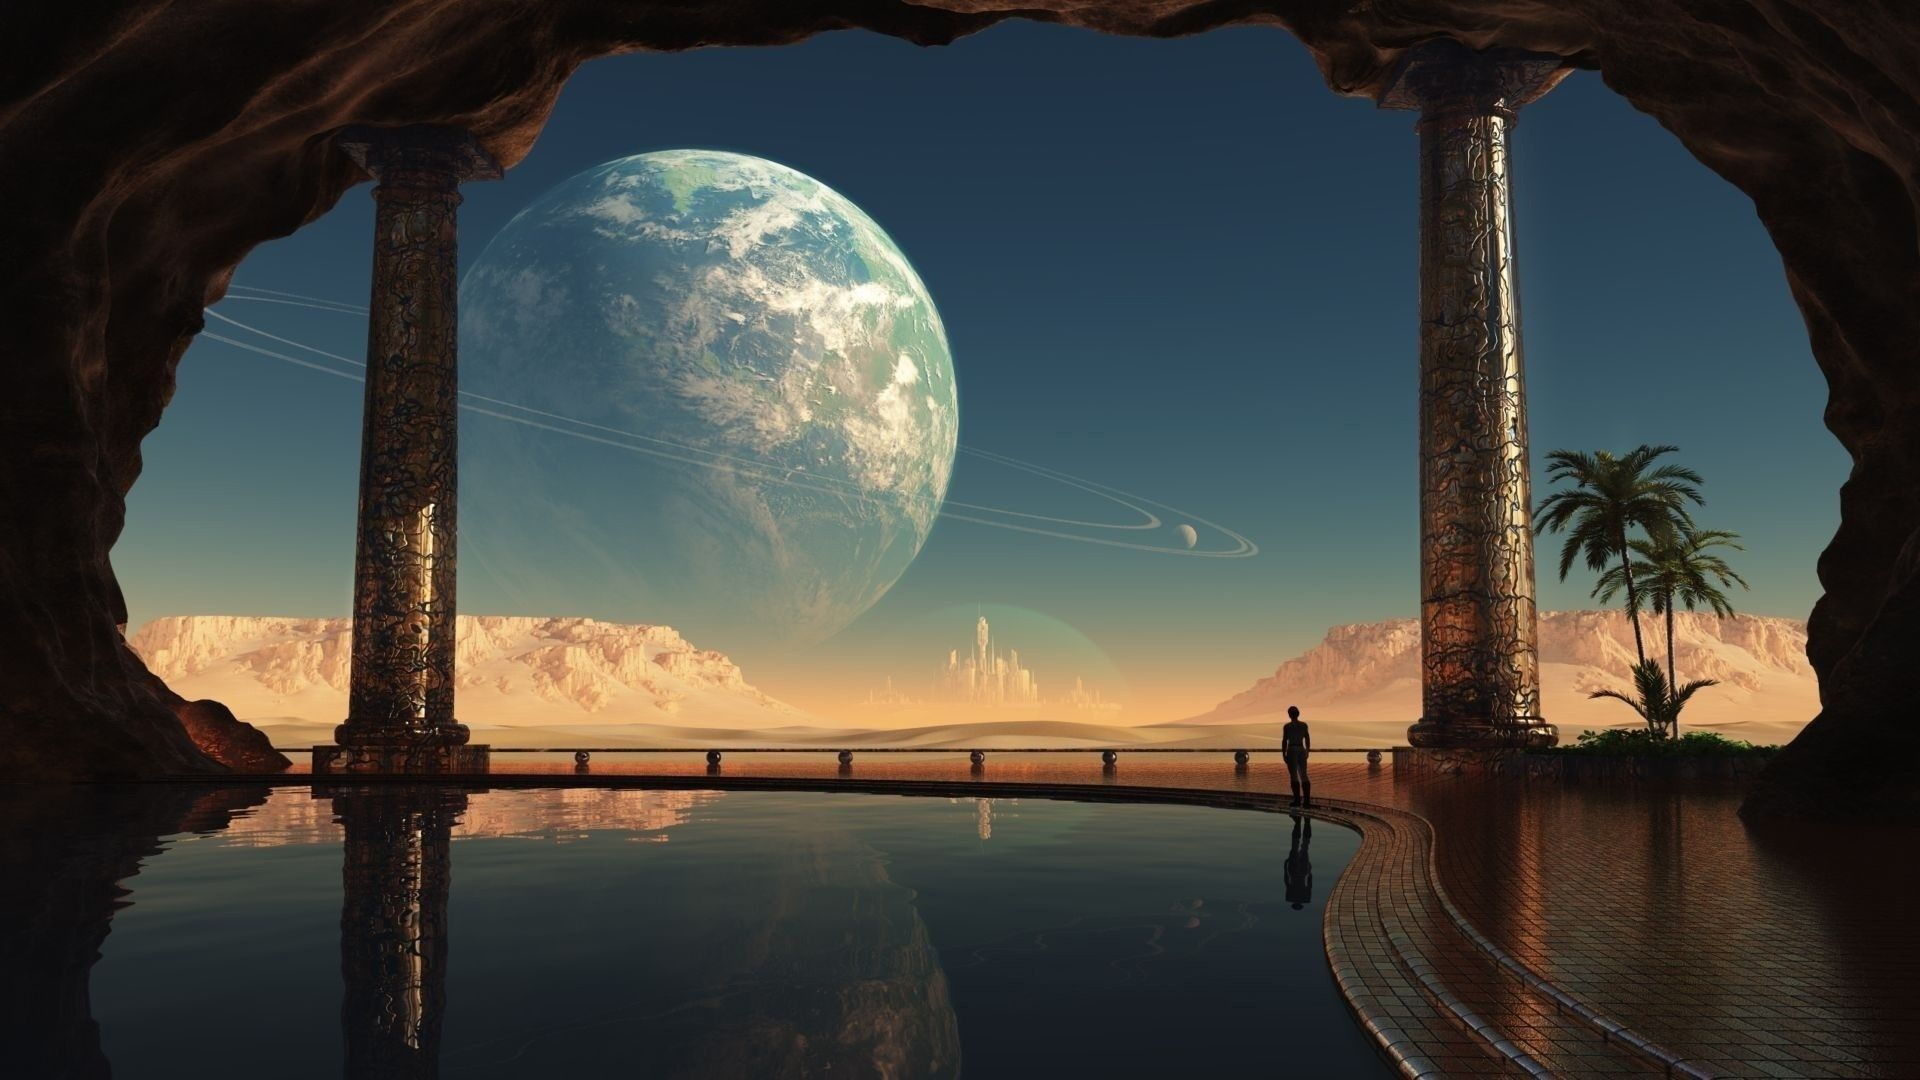 Fantastic Landscapes Of Other Planets